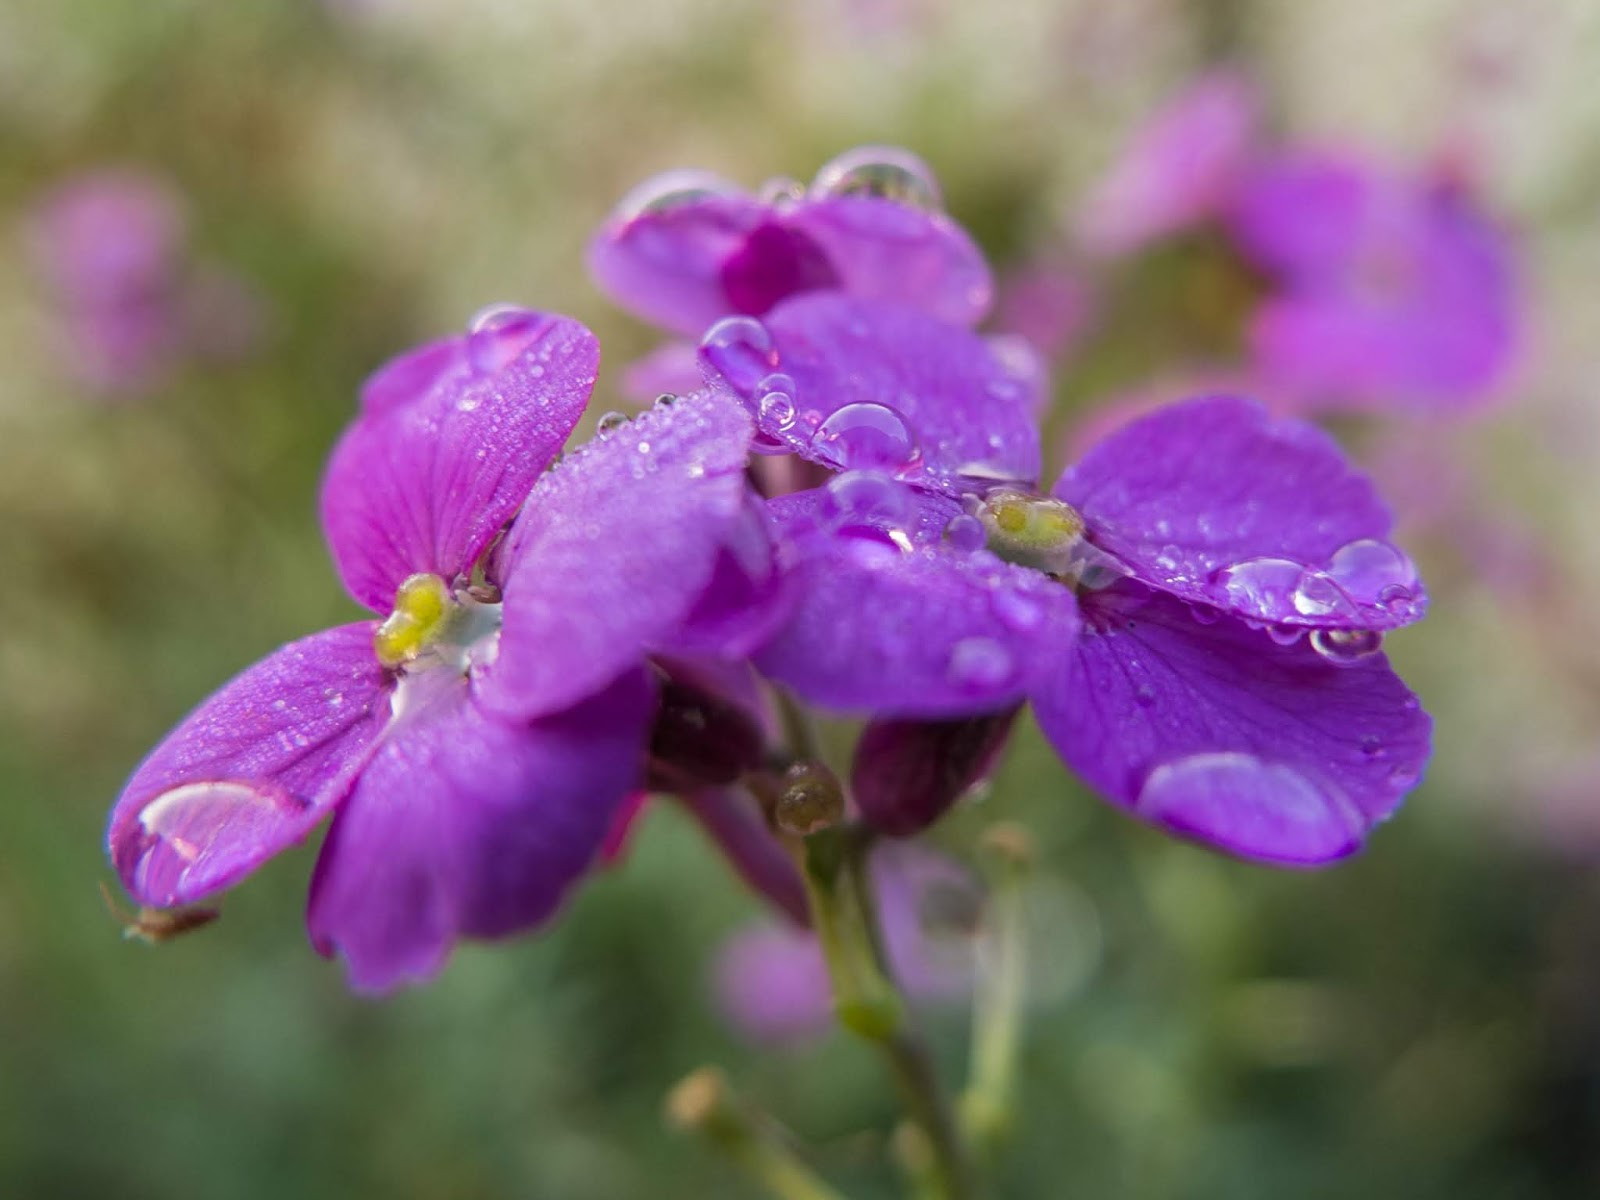 A macro of raindrops on purple Wallflowers.